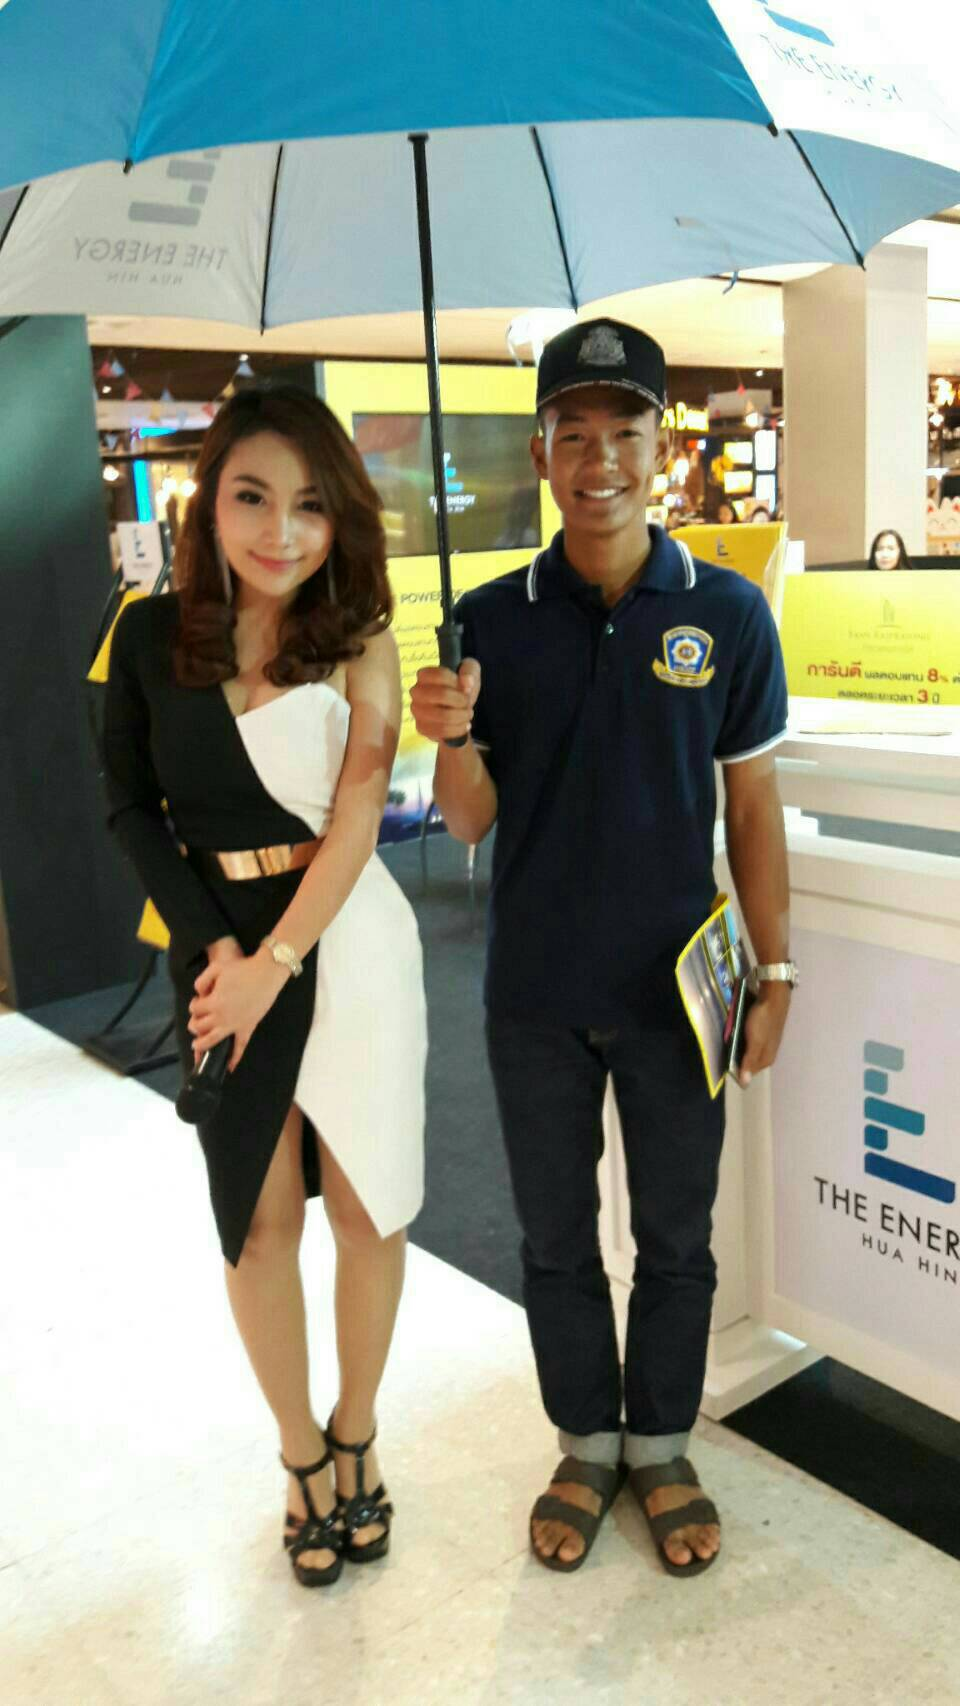 https://www.theenergy.co.th/media/client/client_pic/centralplaza_pinklaonew/203801.jpg